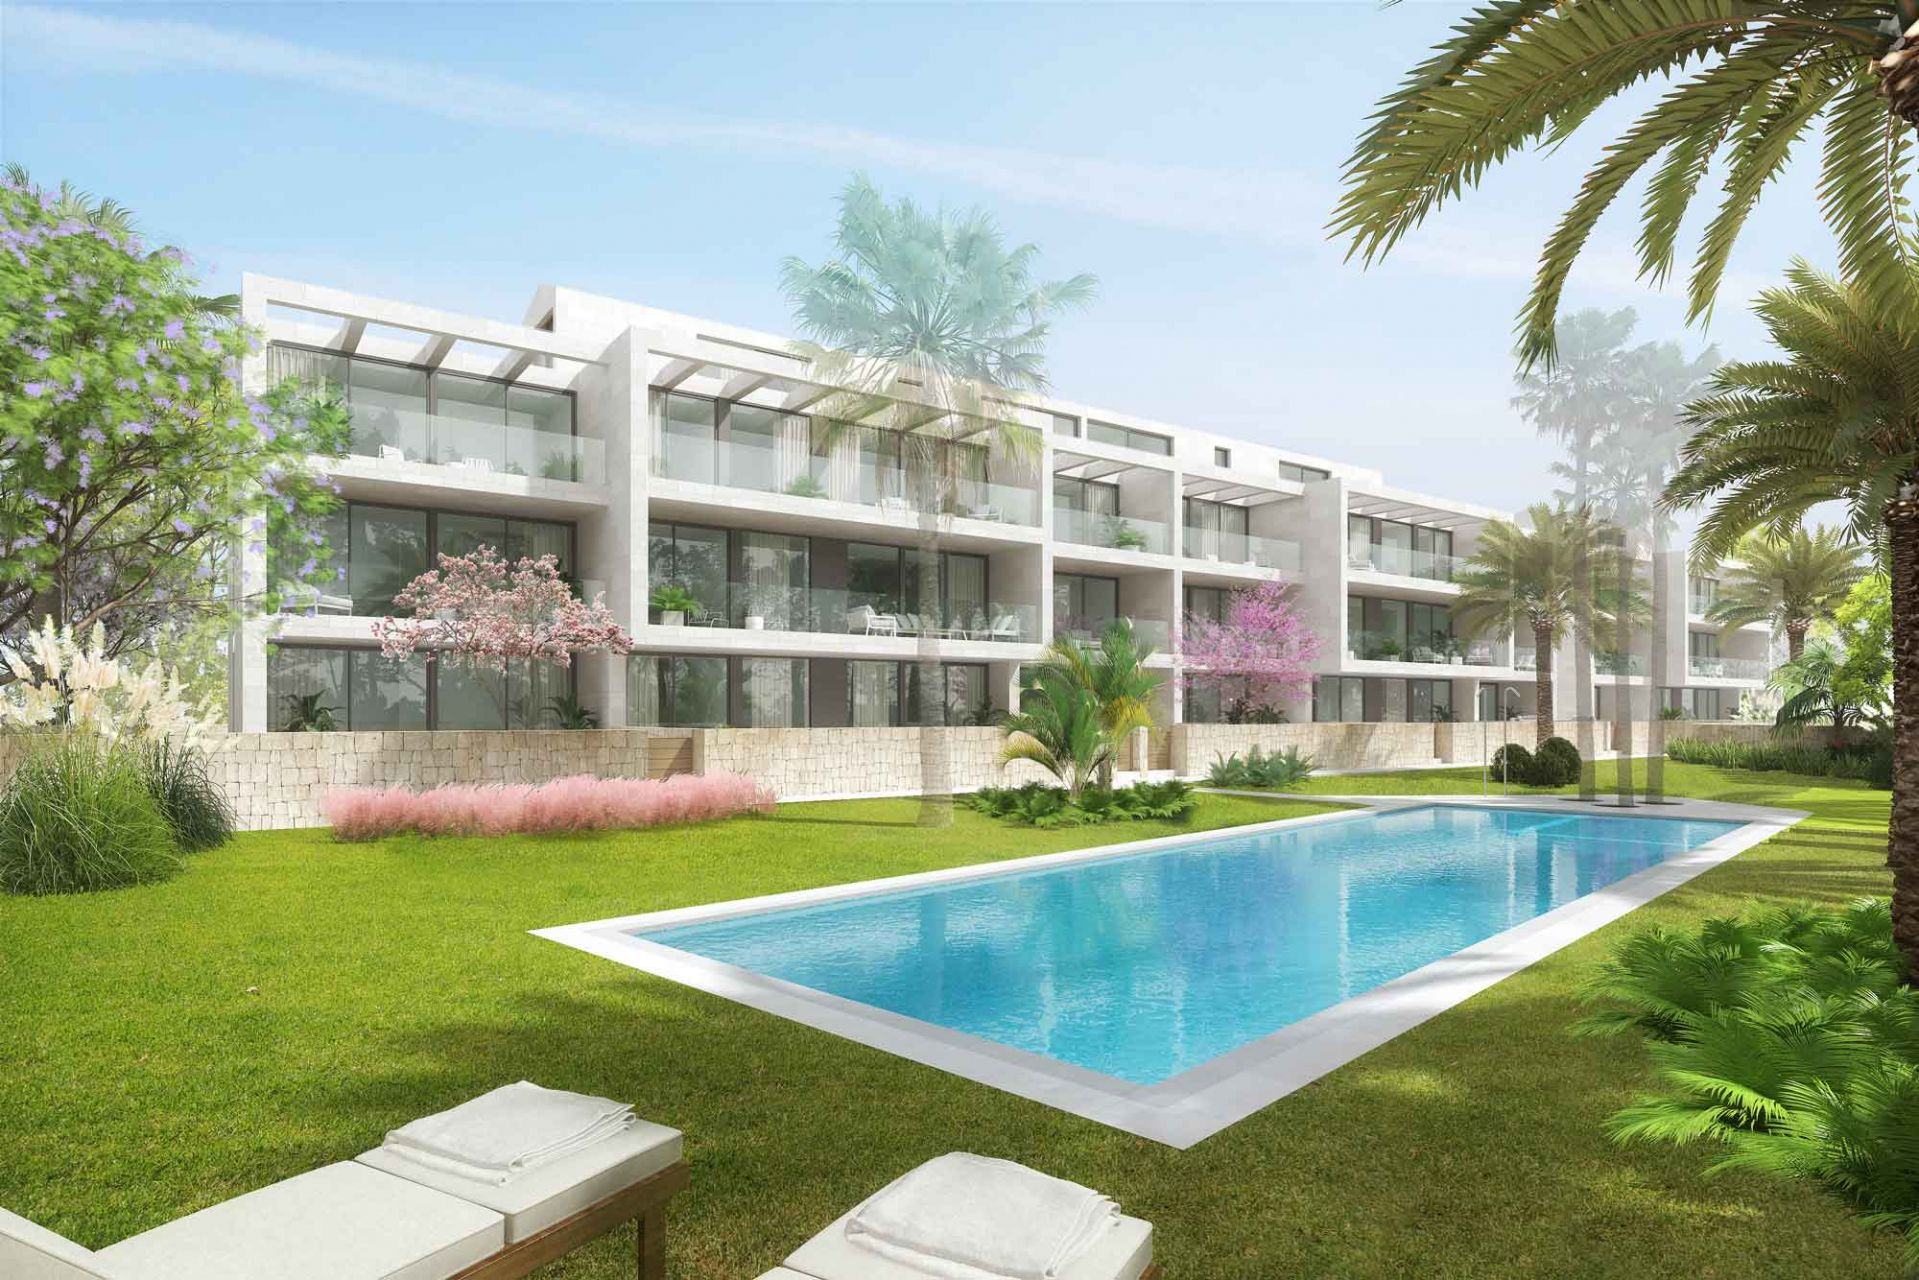 27 apartments next to Jávea Marina 1